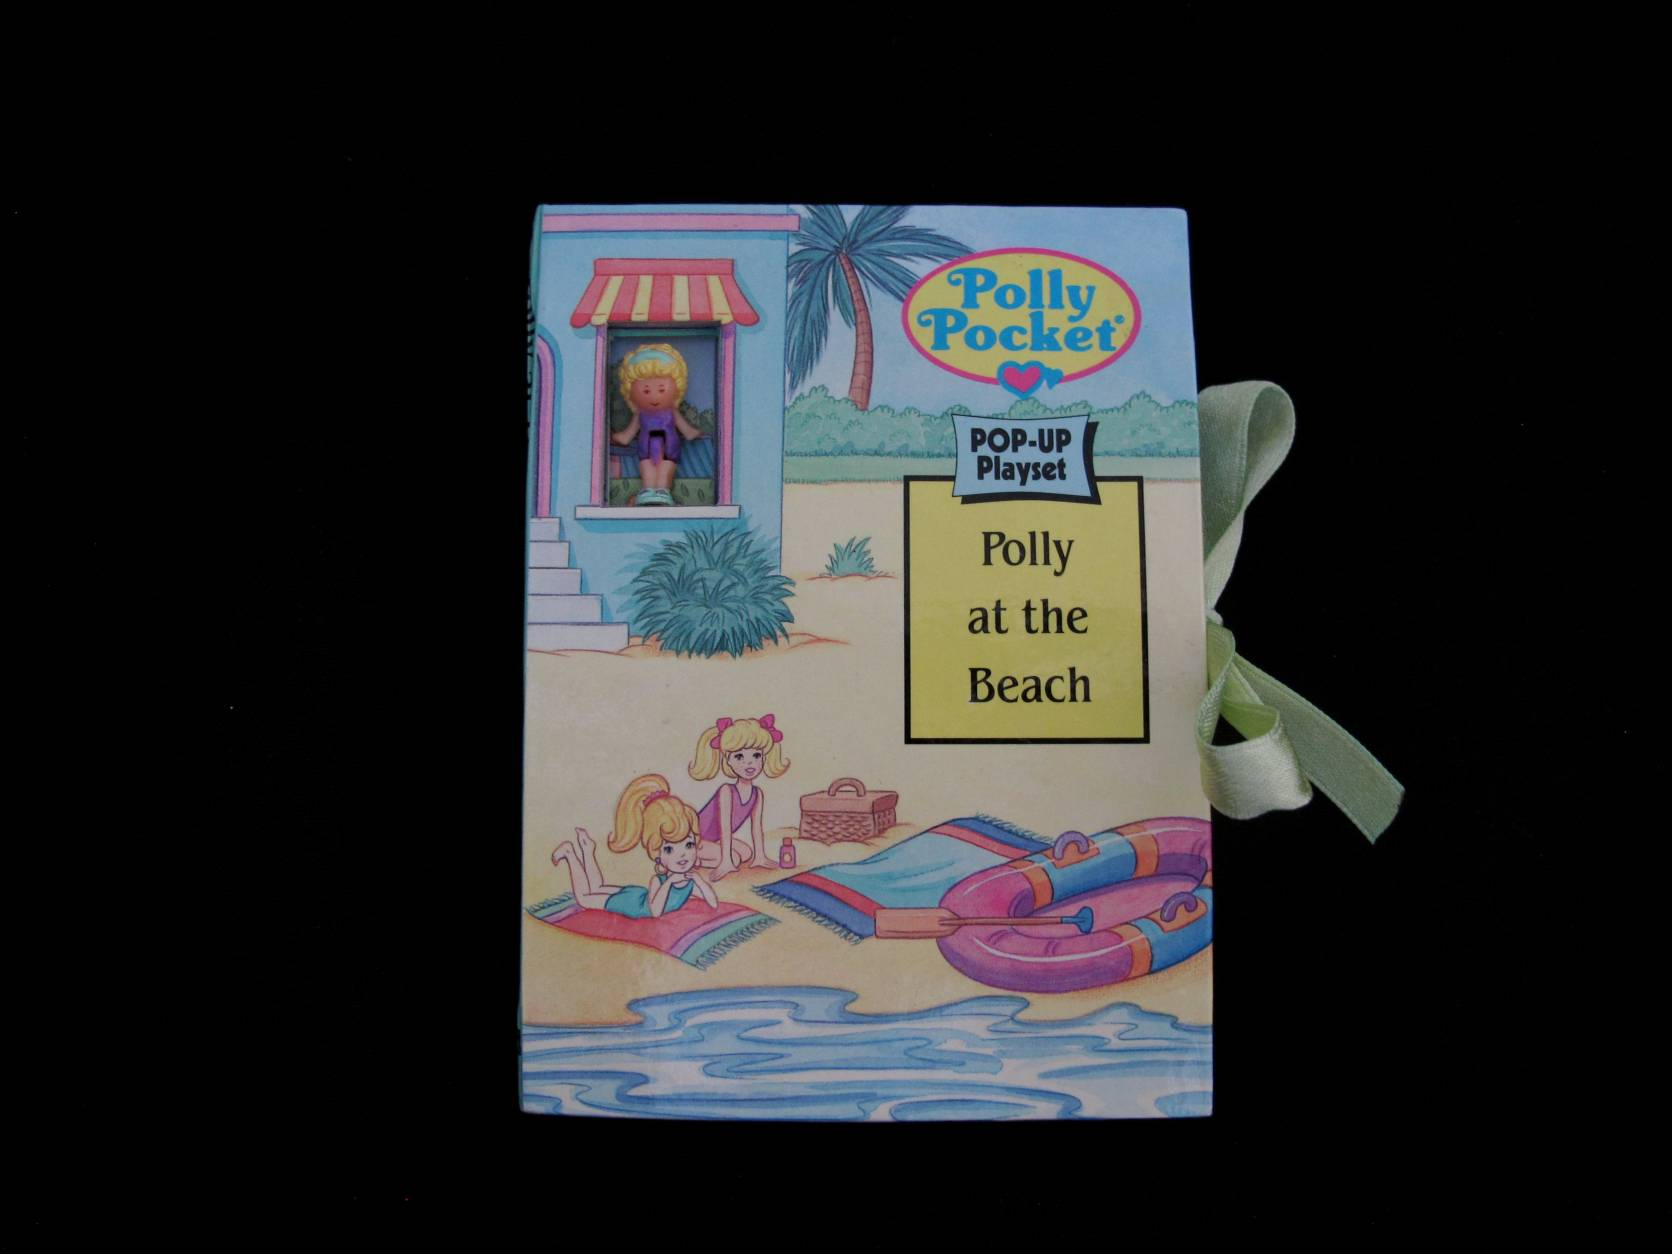 1996 Pop up playset Polly at the beach (1)